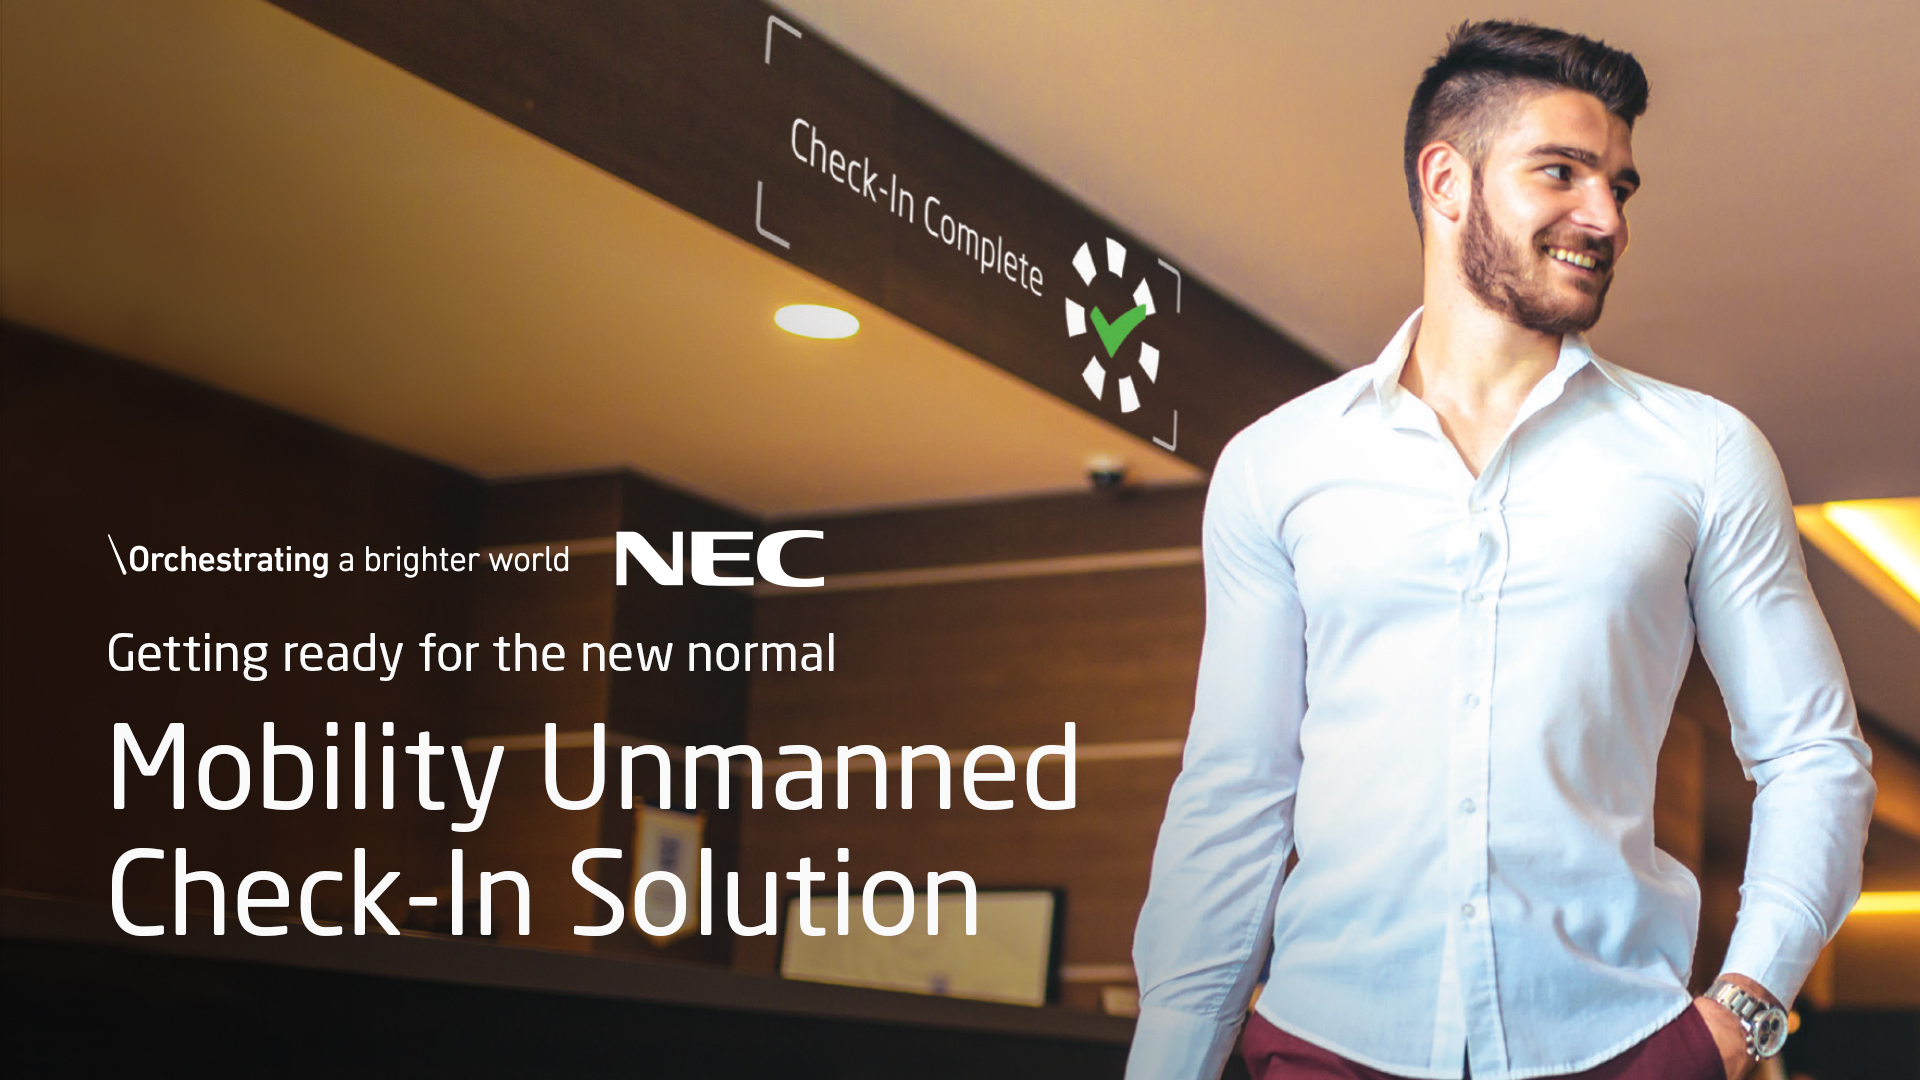 NEC Mobility Unmanned Check-In Solution